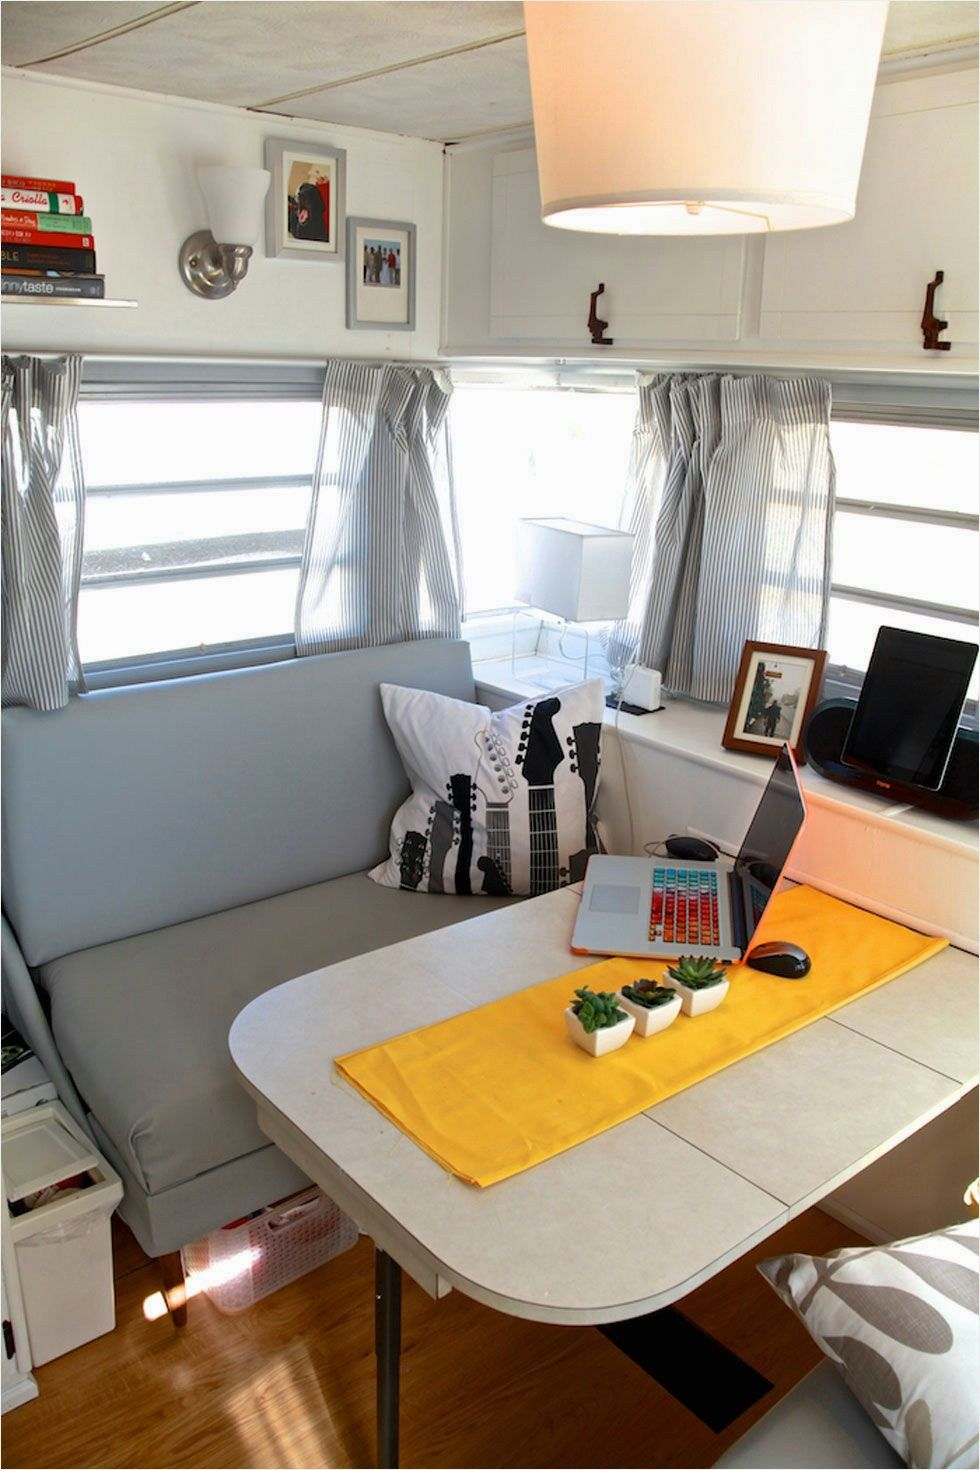 41 Perfect Small Camper Decorating Ideas 36 The Noshery Travel Trailer